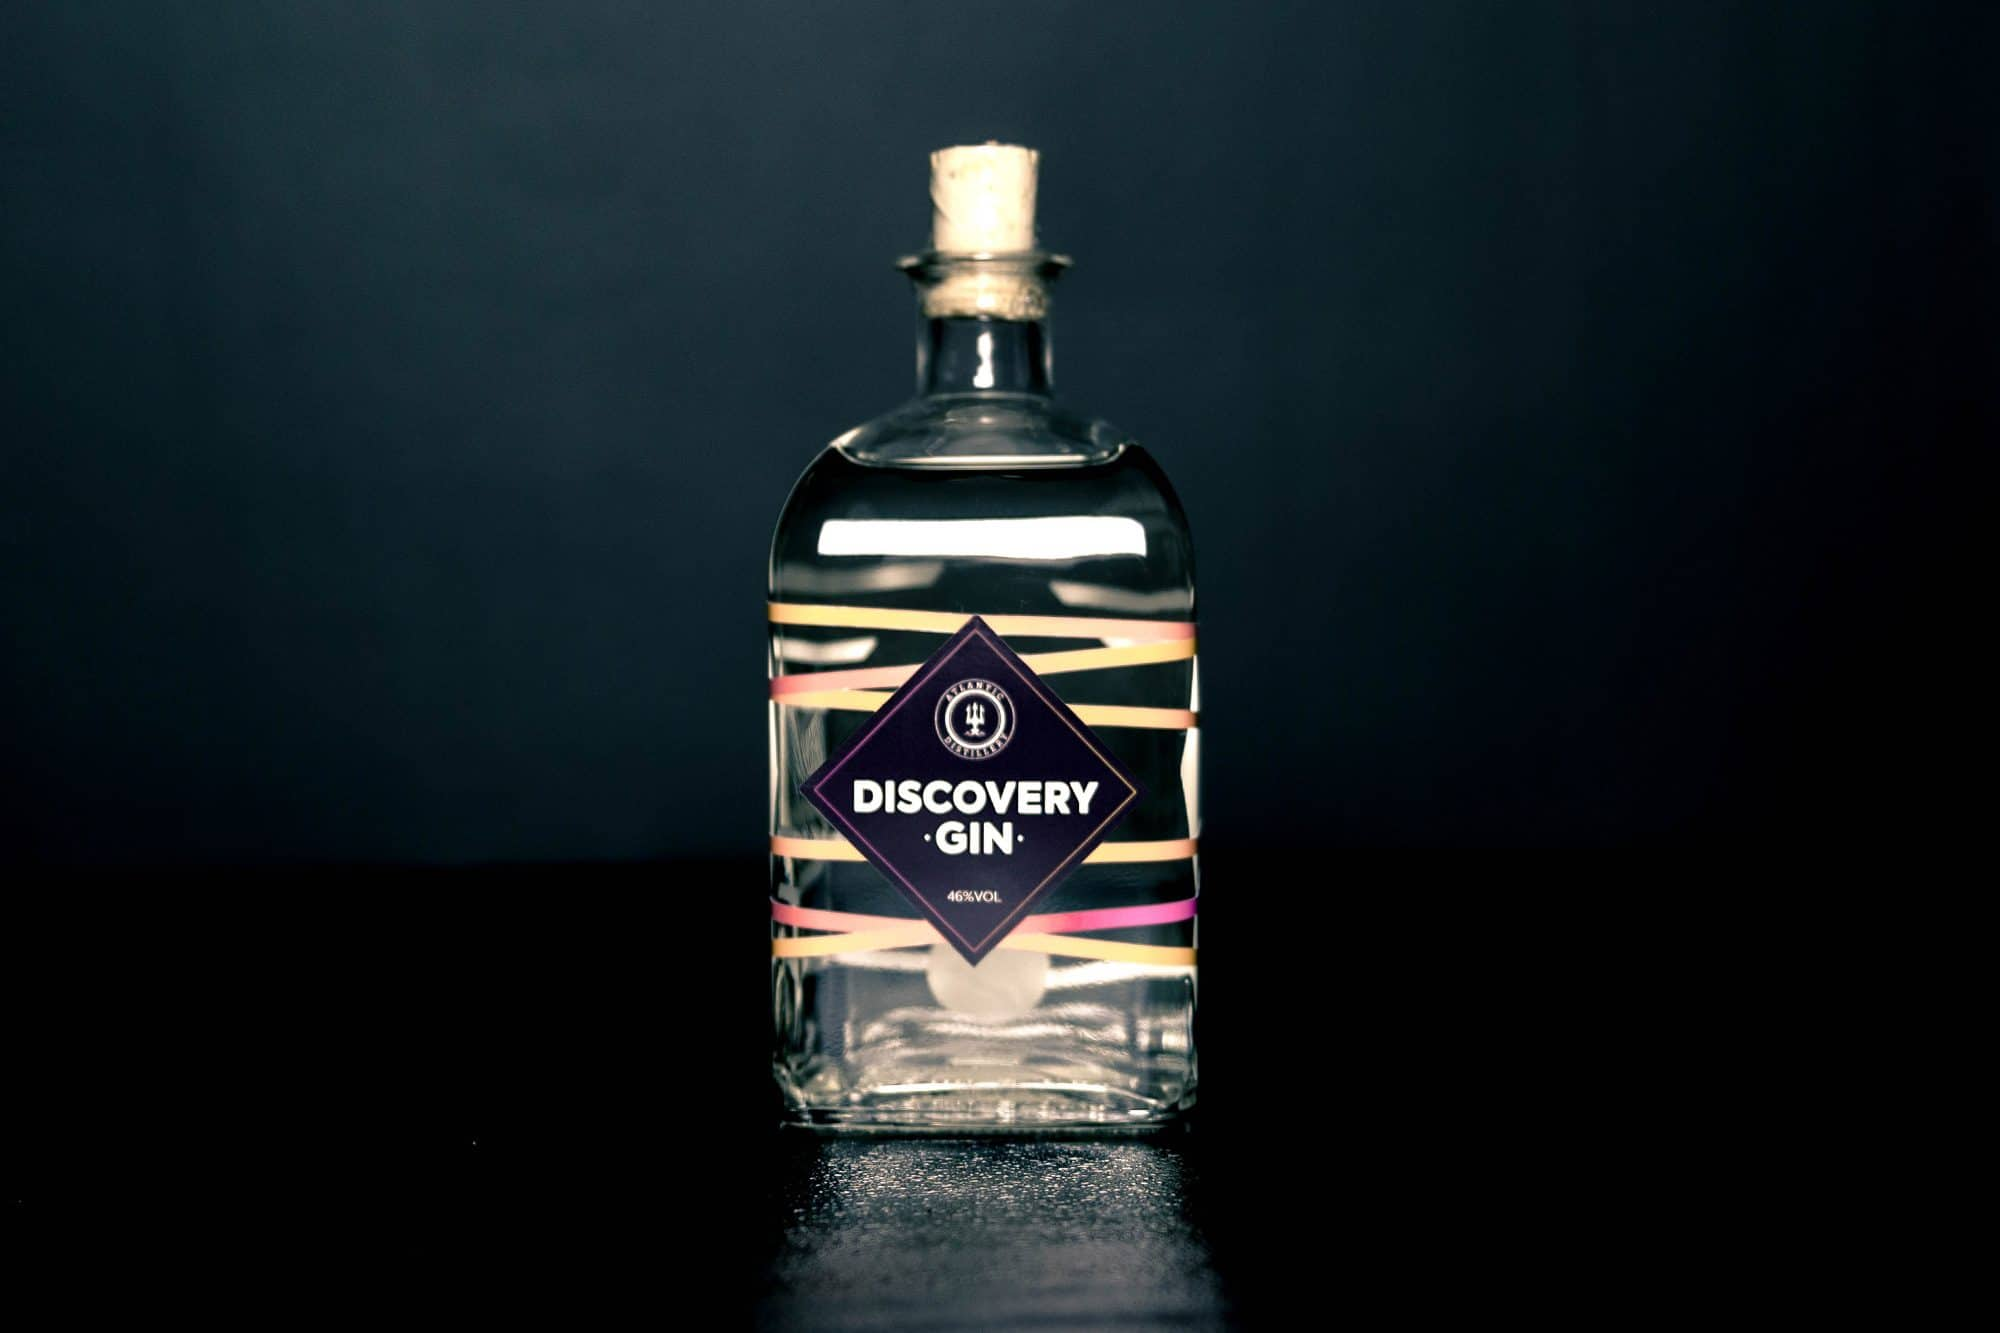 Discovery Gin